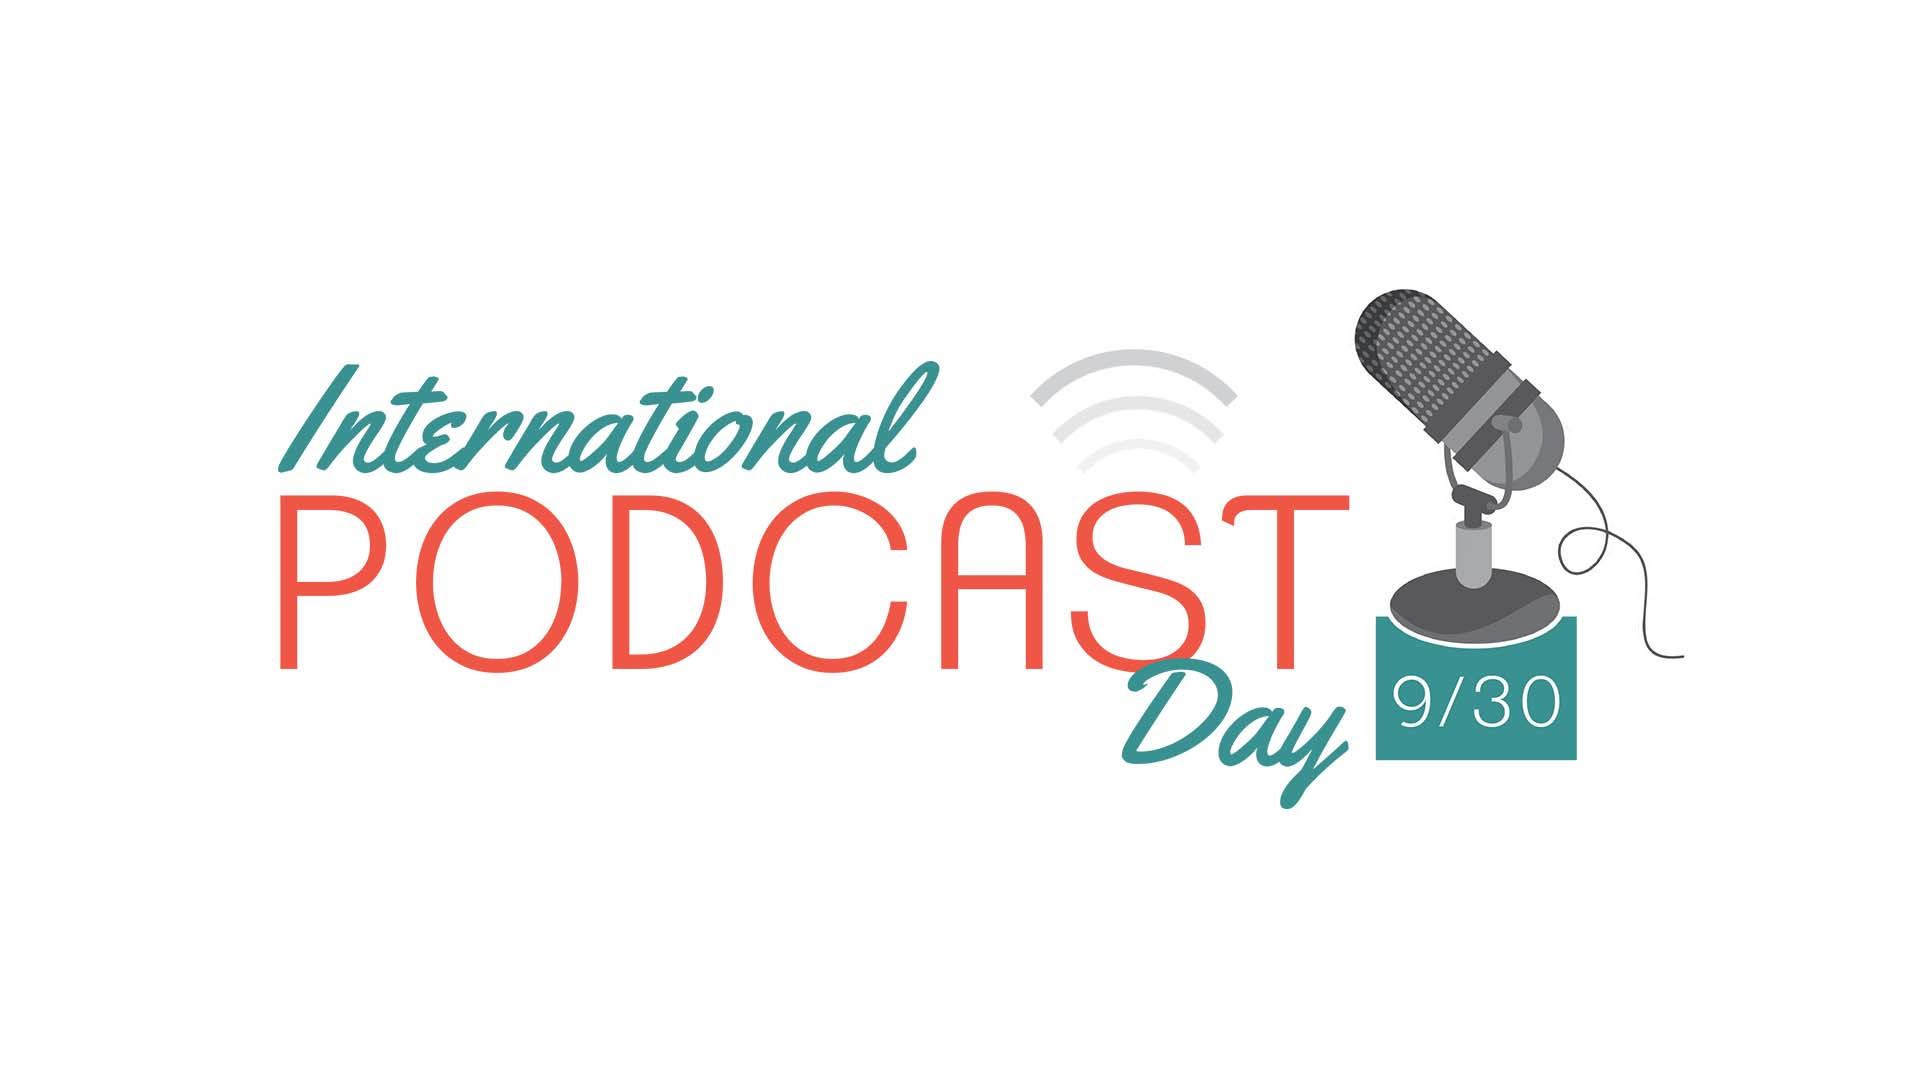 I'M REPRESENTING THE PHILIPPINES AT INTERNATIONAL PODCAST DAY!